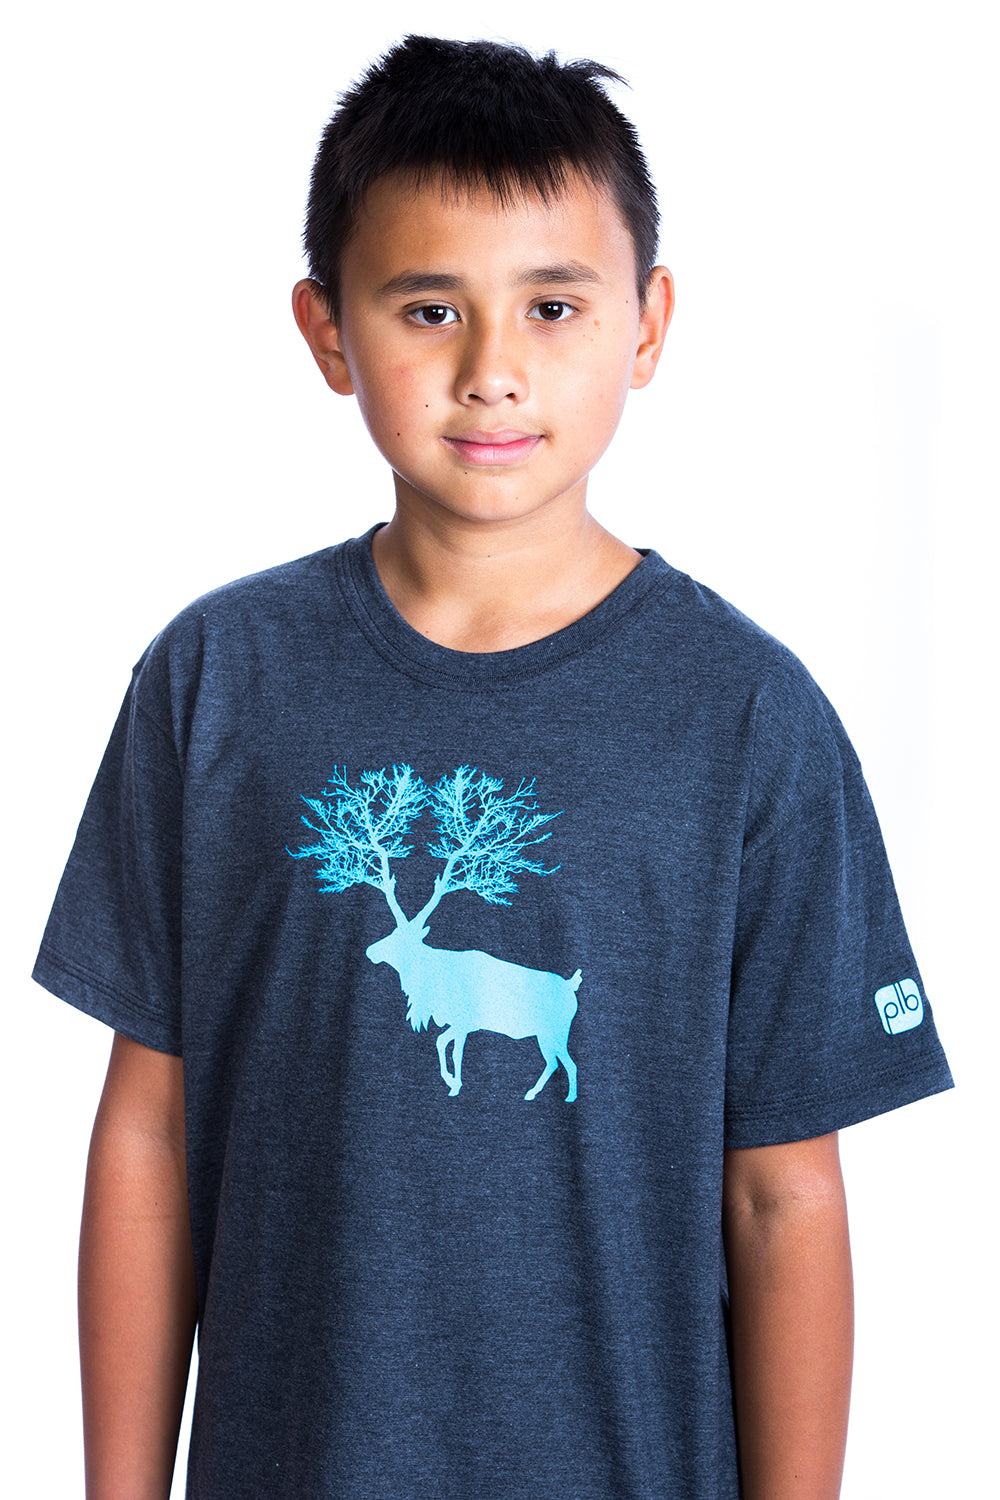 Kids Caribou Shirt Graphic Tee Baby Tshirt | Organic | Locally Made